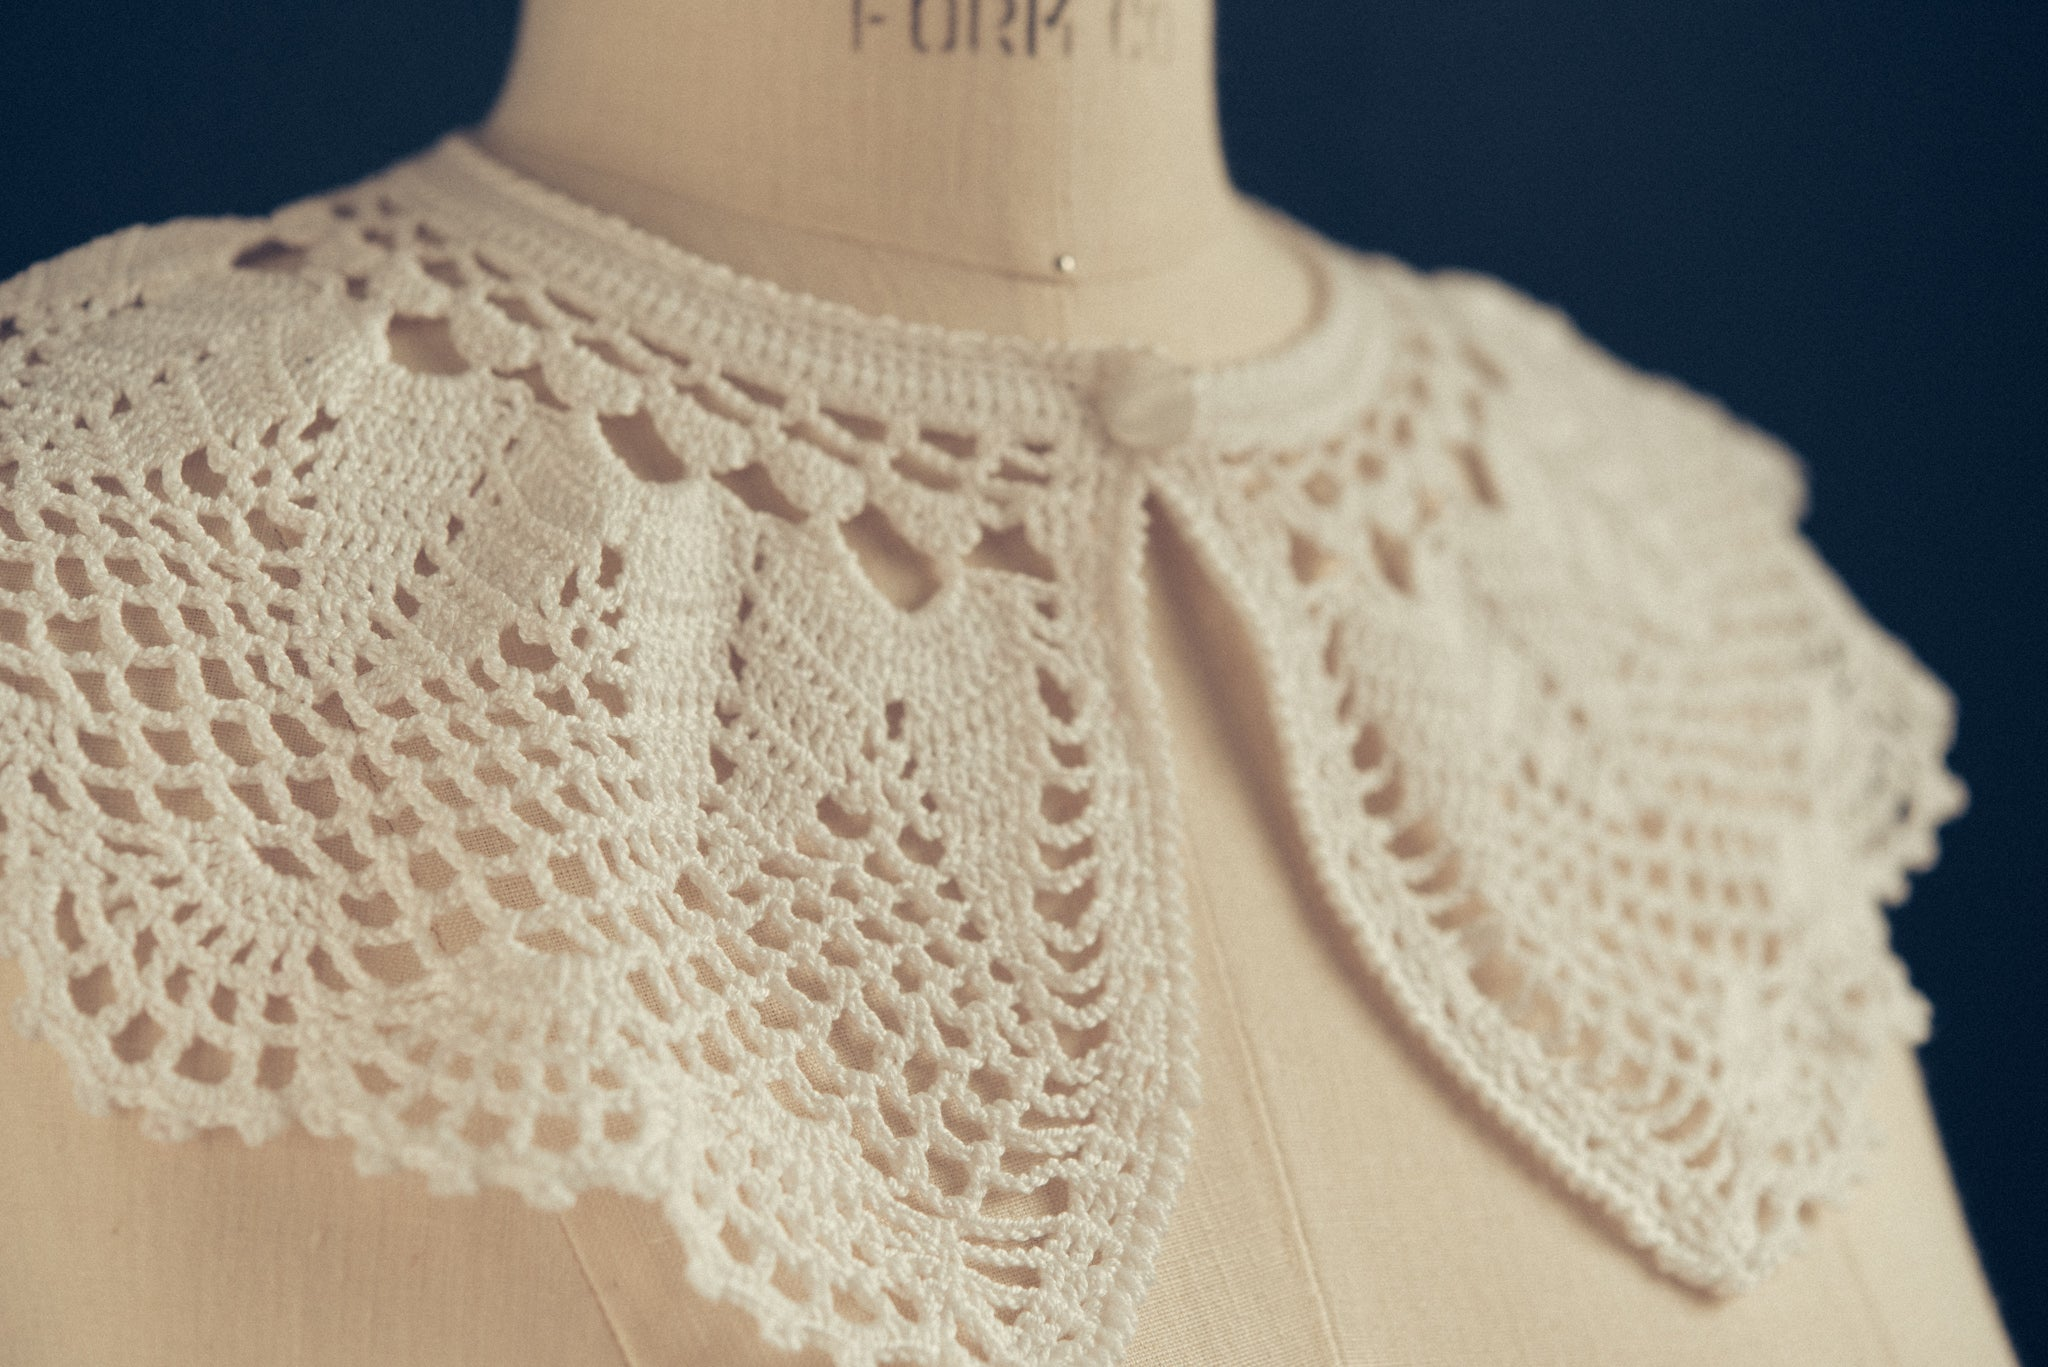 Handmade crochet collar made in Italy - Patrizia Montanari